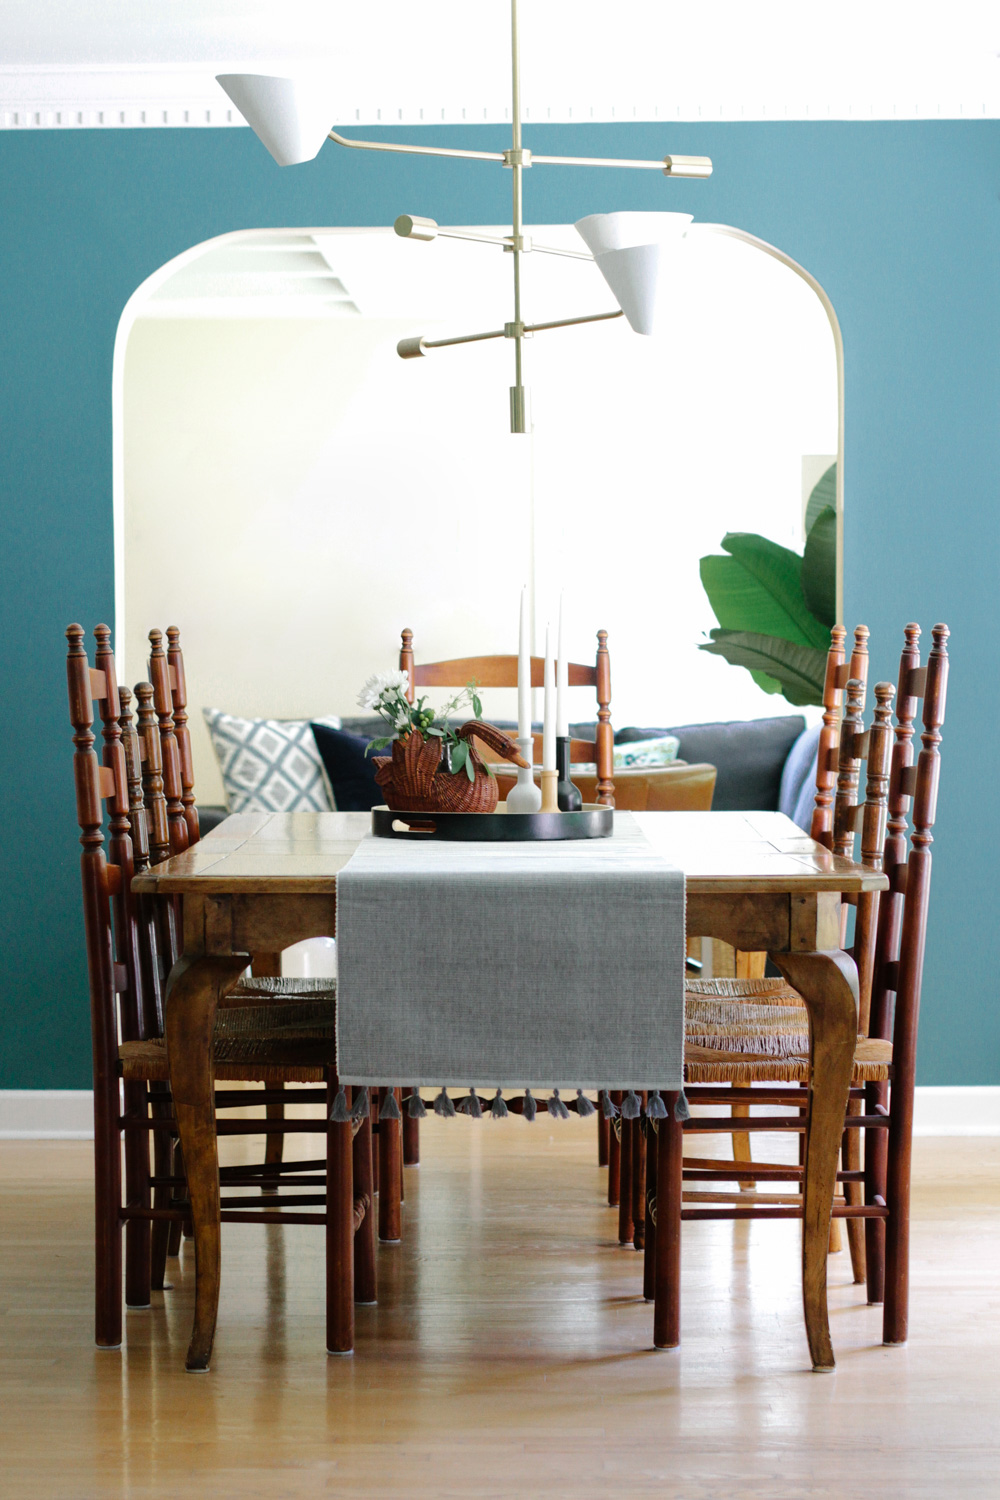 Modern Colonial Dining Room with Green Walls and West Elm Mid-century Chandelier